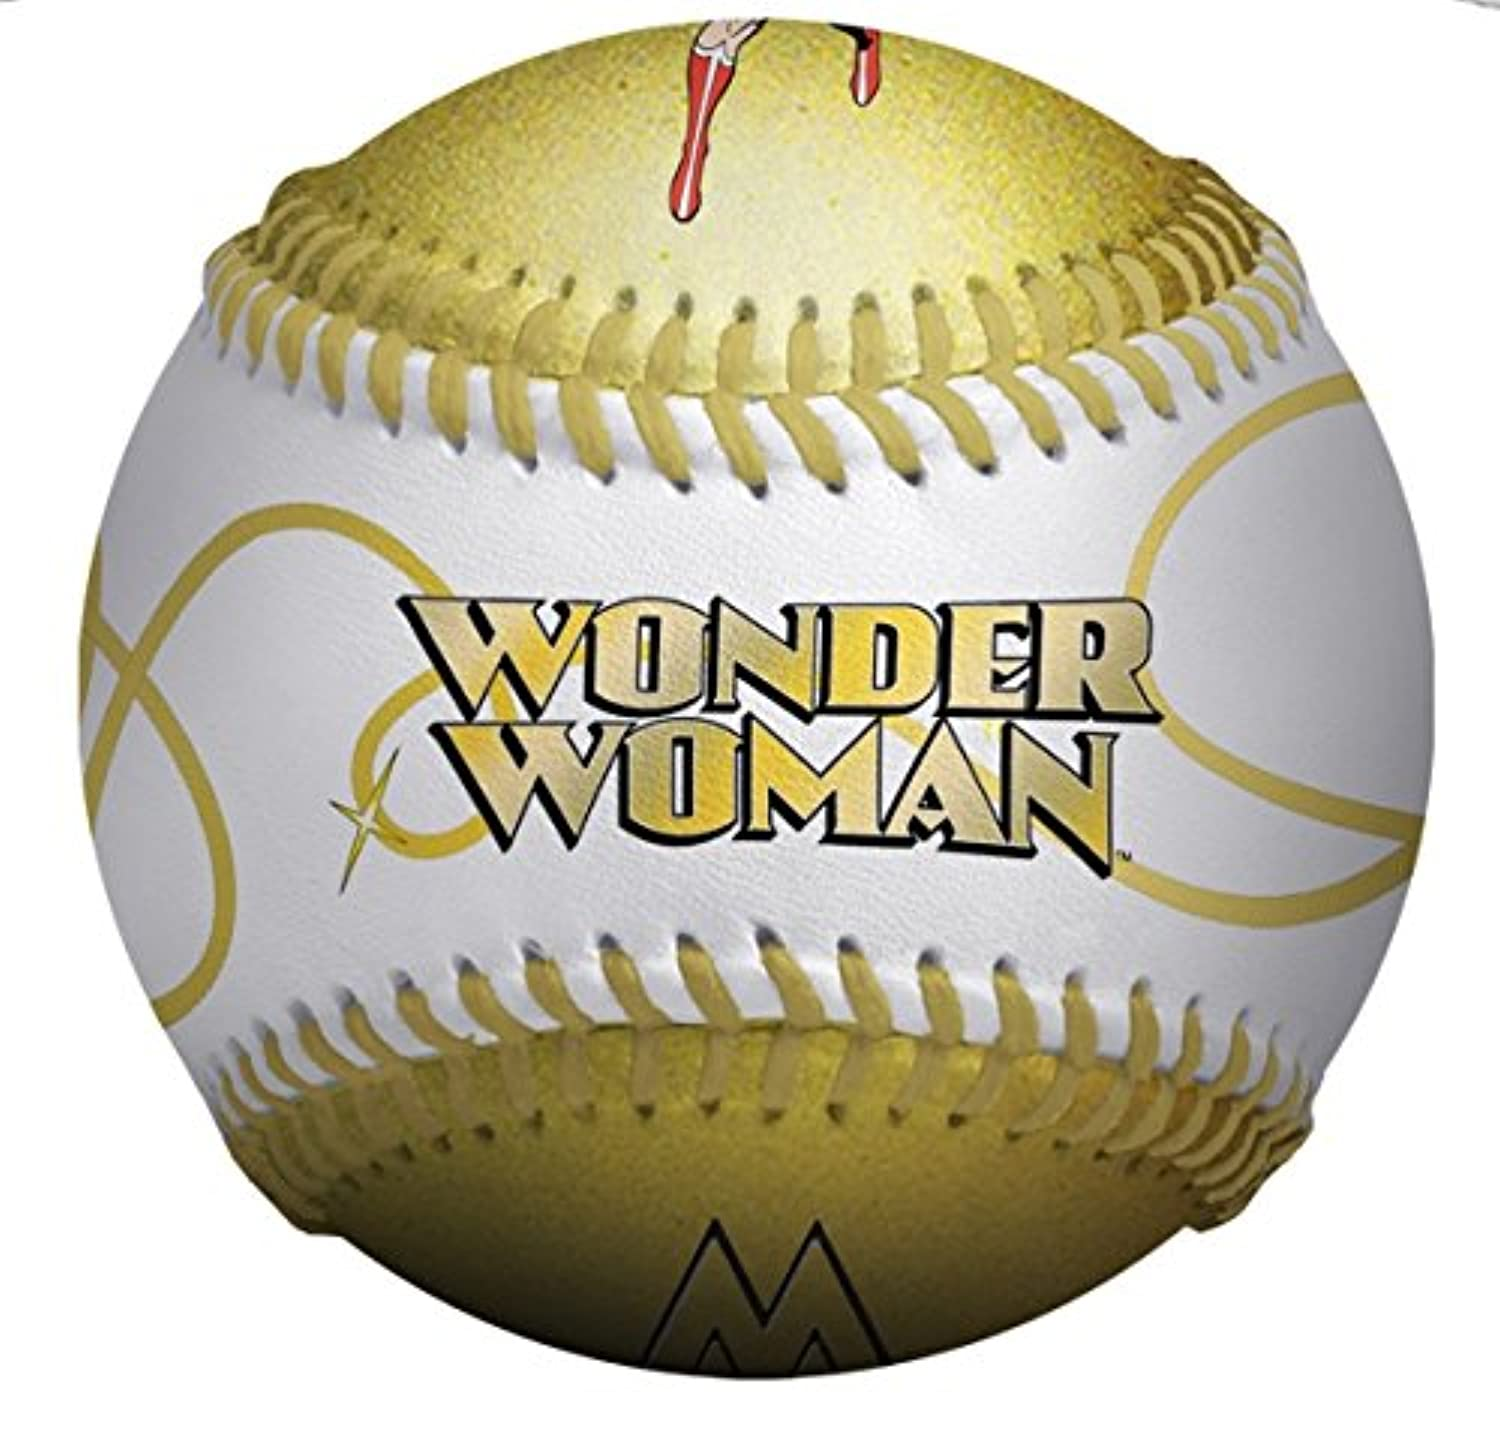 Wonder Woman In Action and WW Logo DC Comics White & Gold Baseball by American Classics